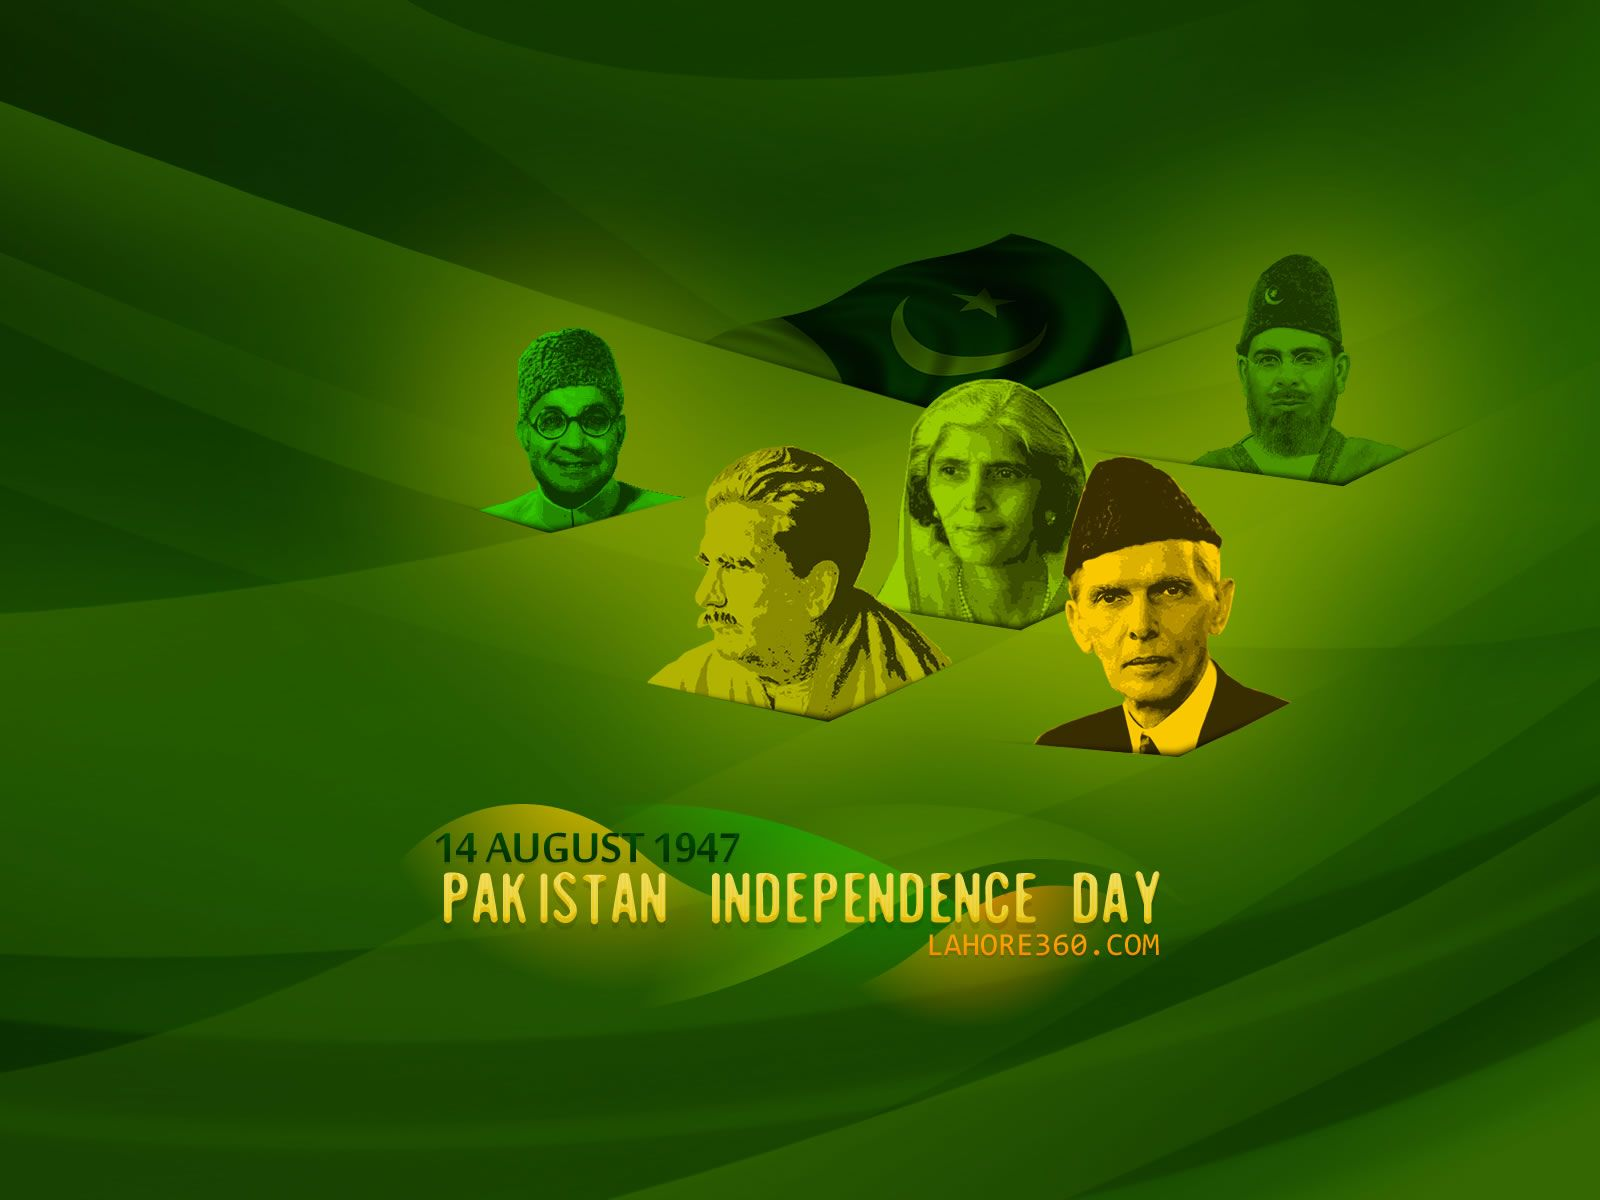 1600x1200 Pakistan Flag Wallpapers Hd | HD Wallpapers | Pakistan independence ...